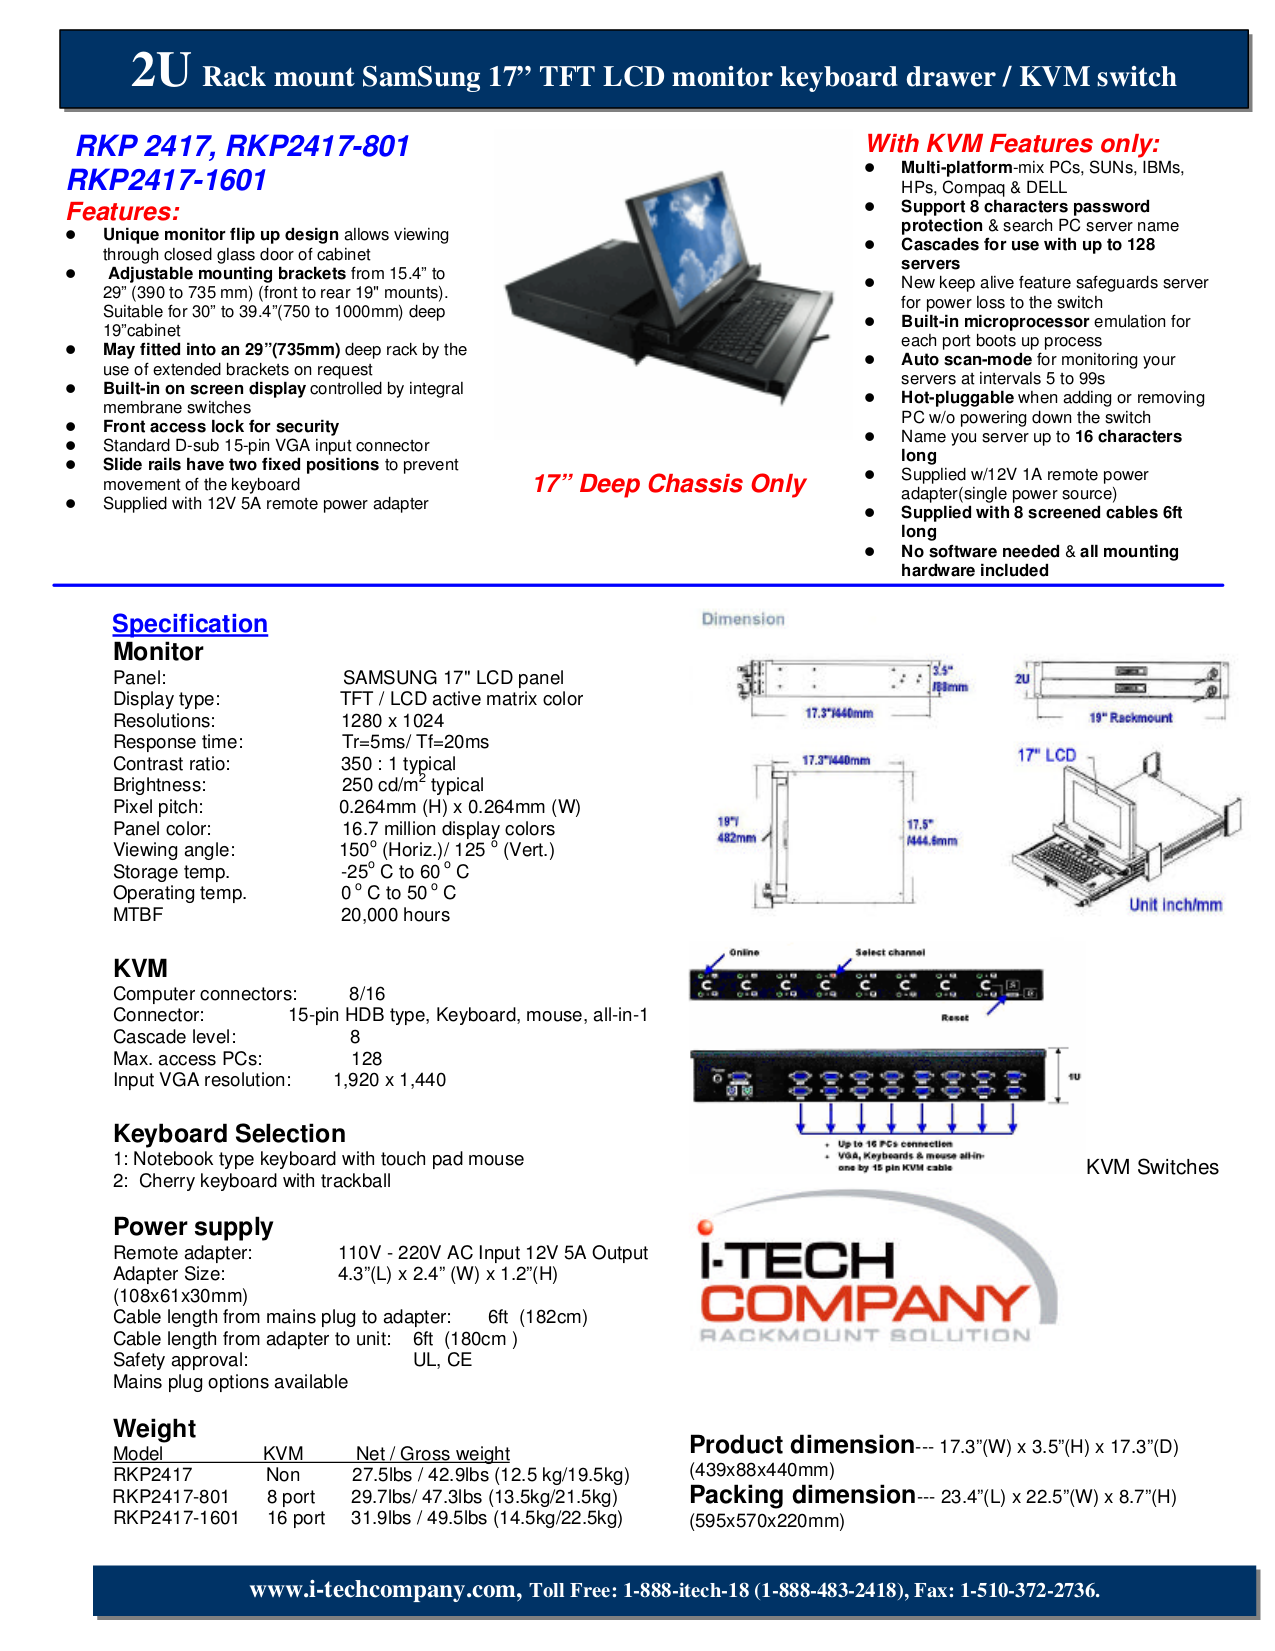 pdf for I-Tech Other RKP2417-1601 Keyboard Drawers manual